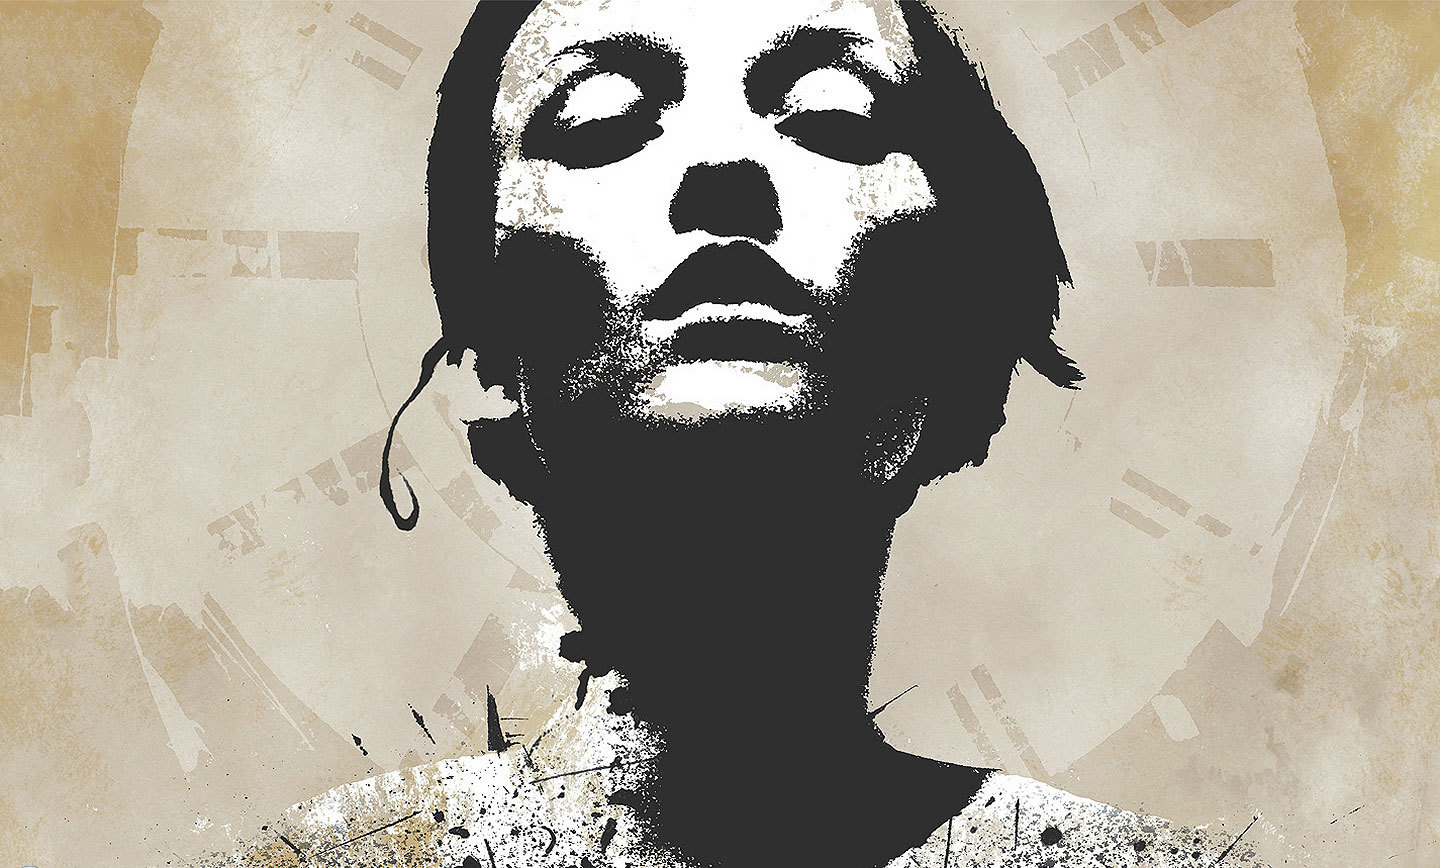 album covers converge HD Wallpaper